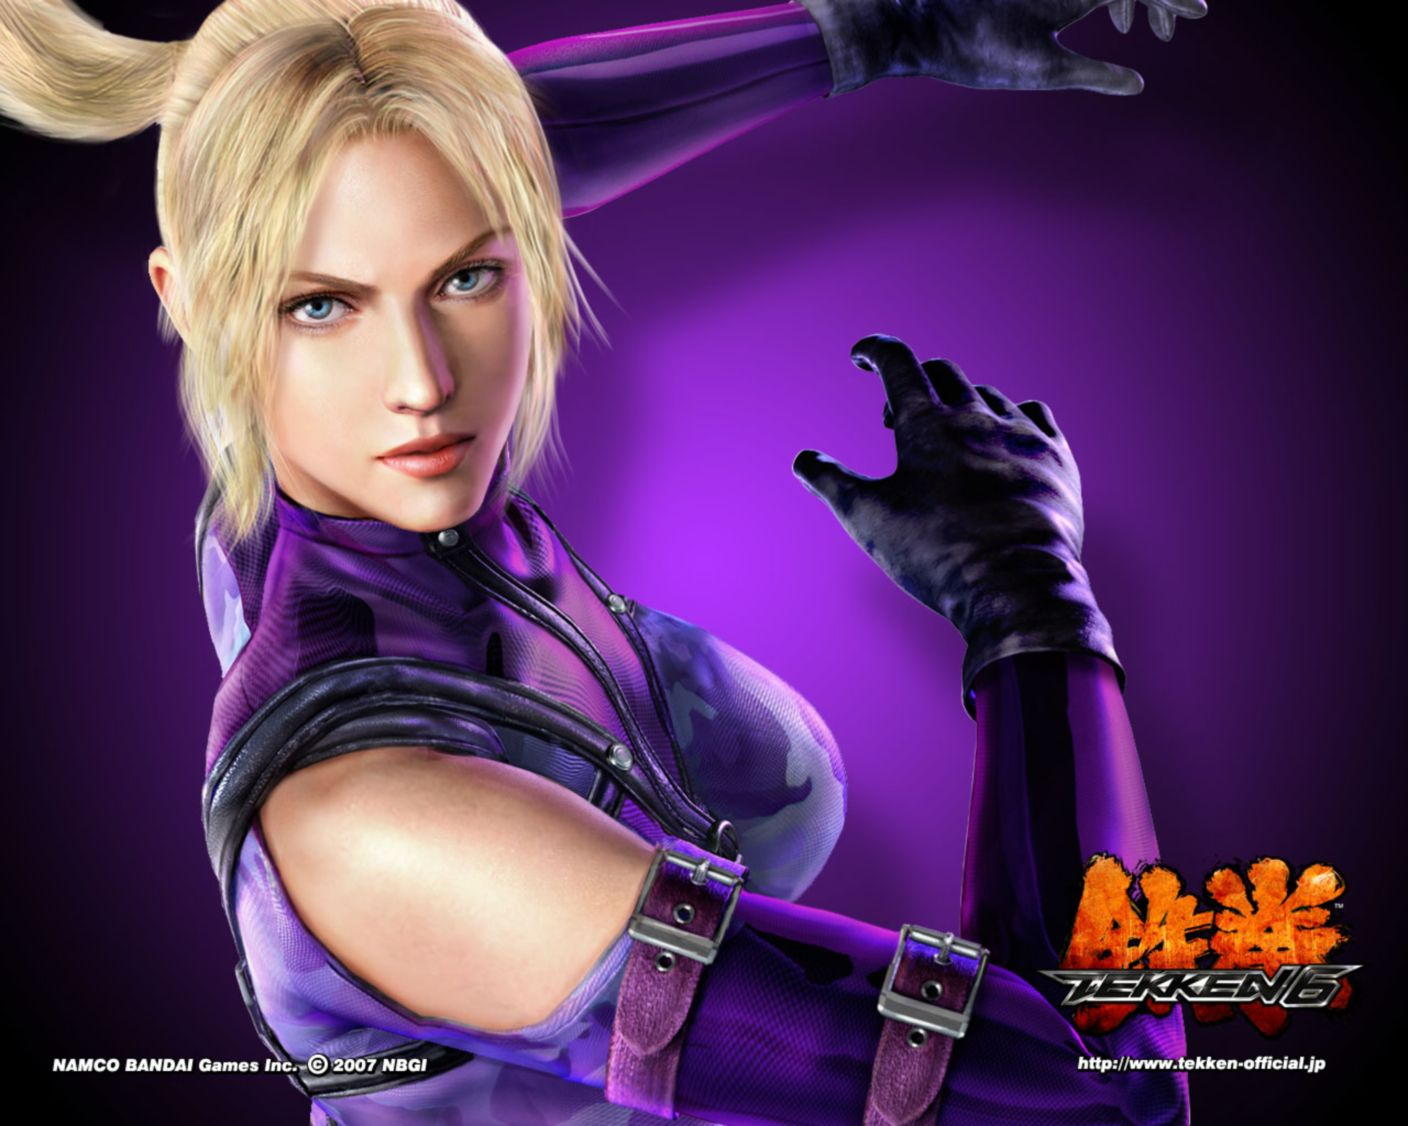 Download free HD Nina Tekken 6 Normal5.4 Wallpaper, image